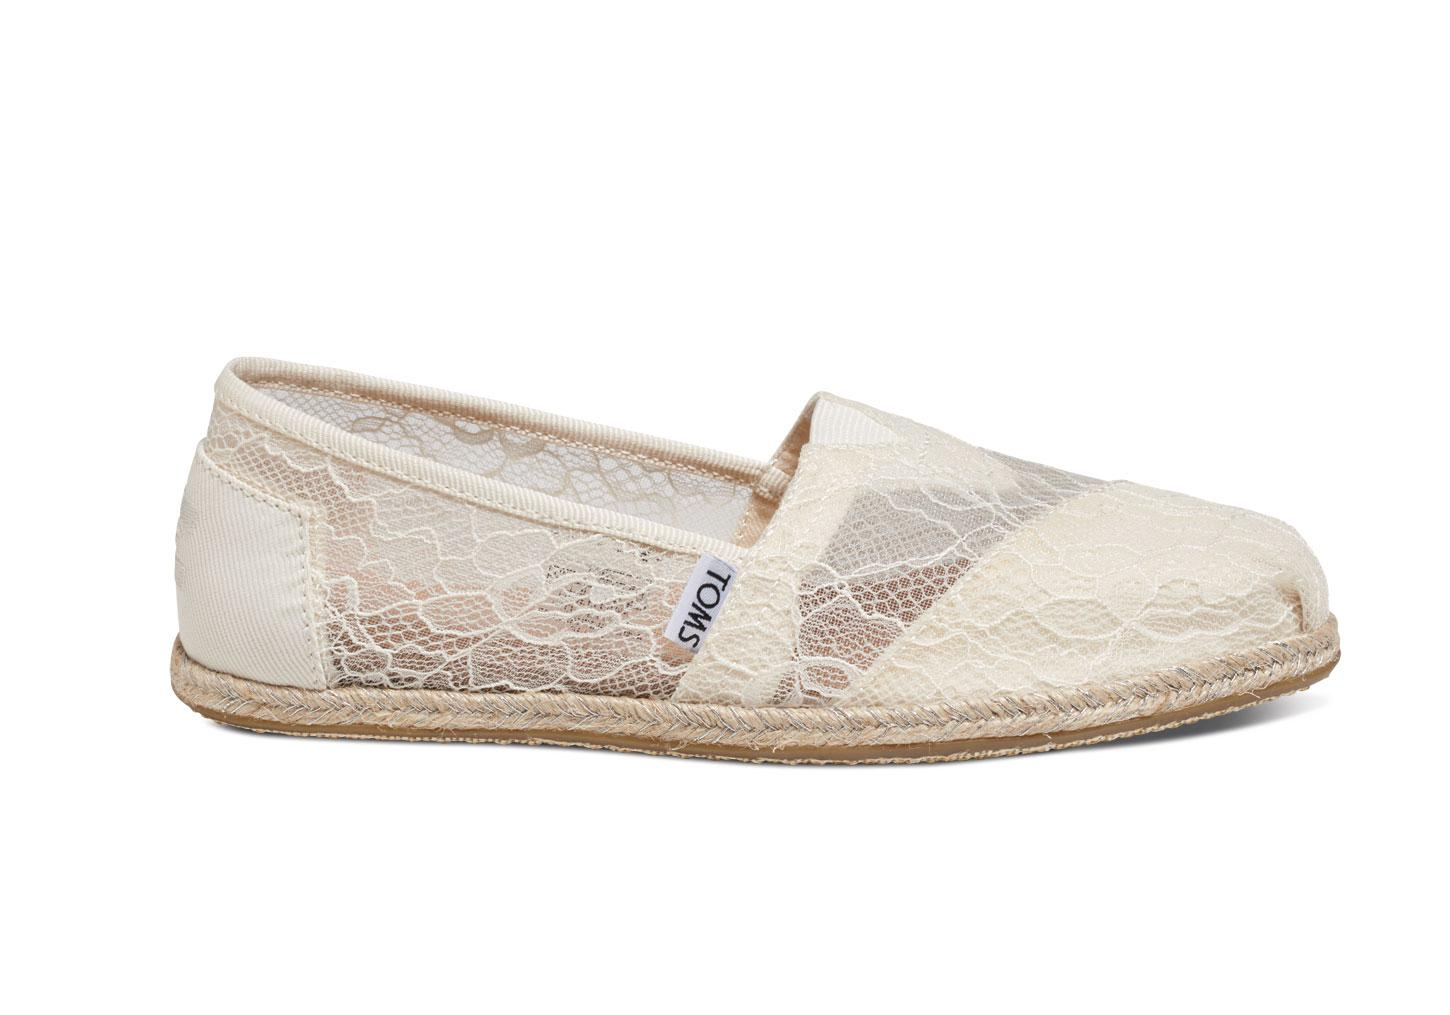 cfb3f3149 TOMS White Lace Rope Women's Espadrilles in White - Lyst